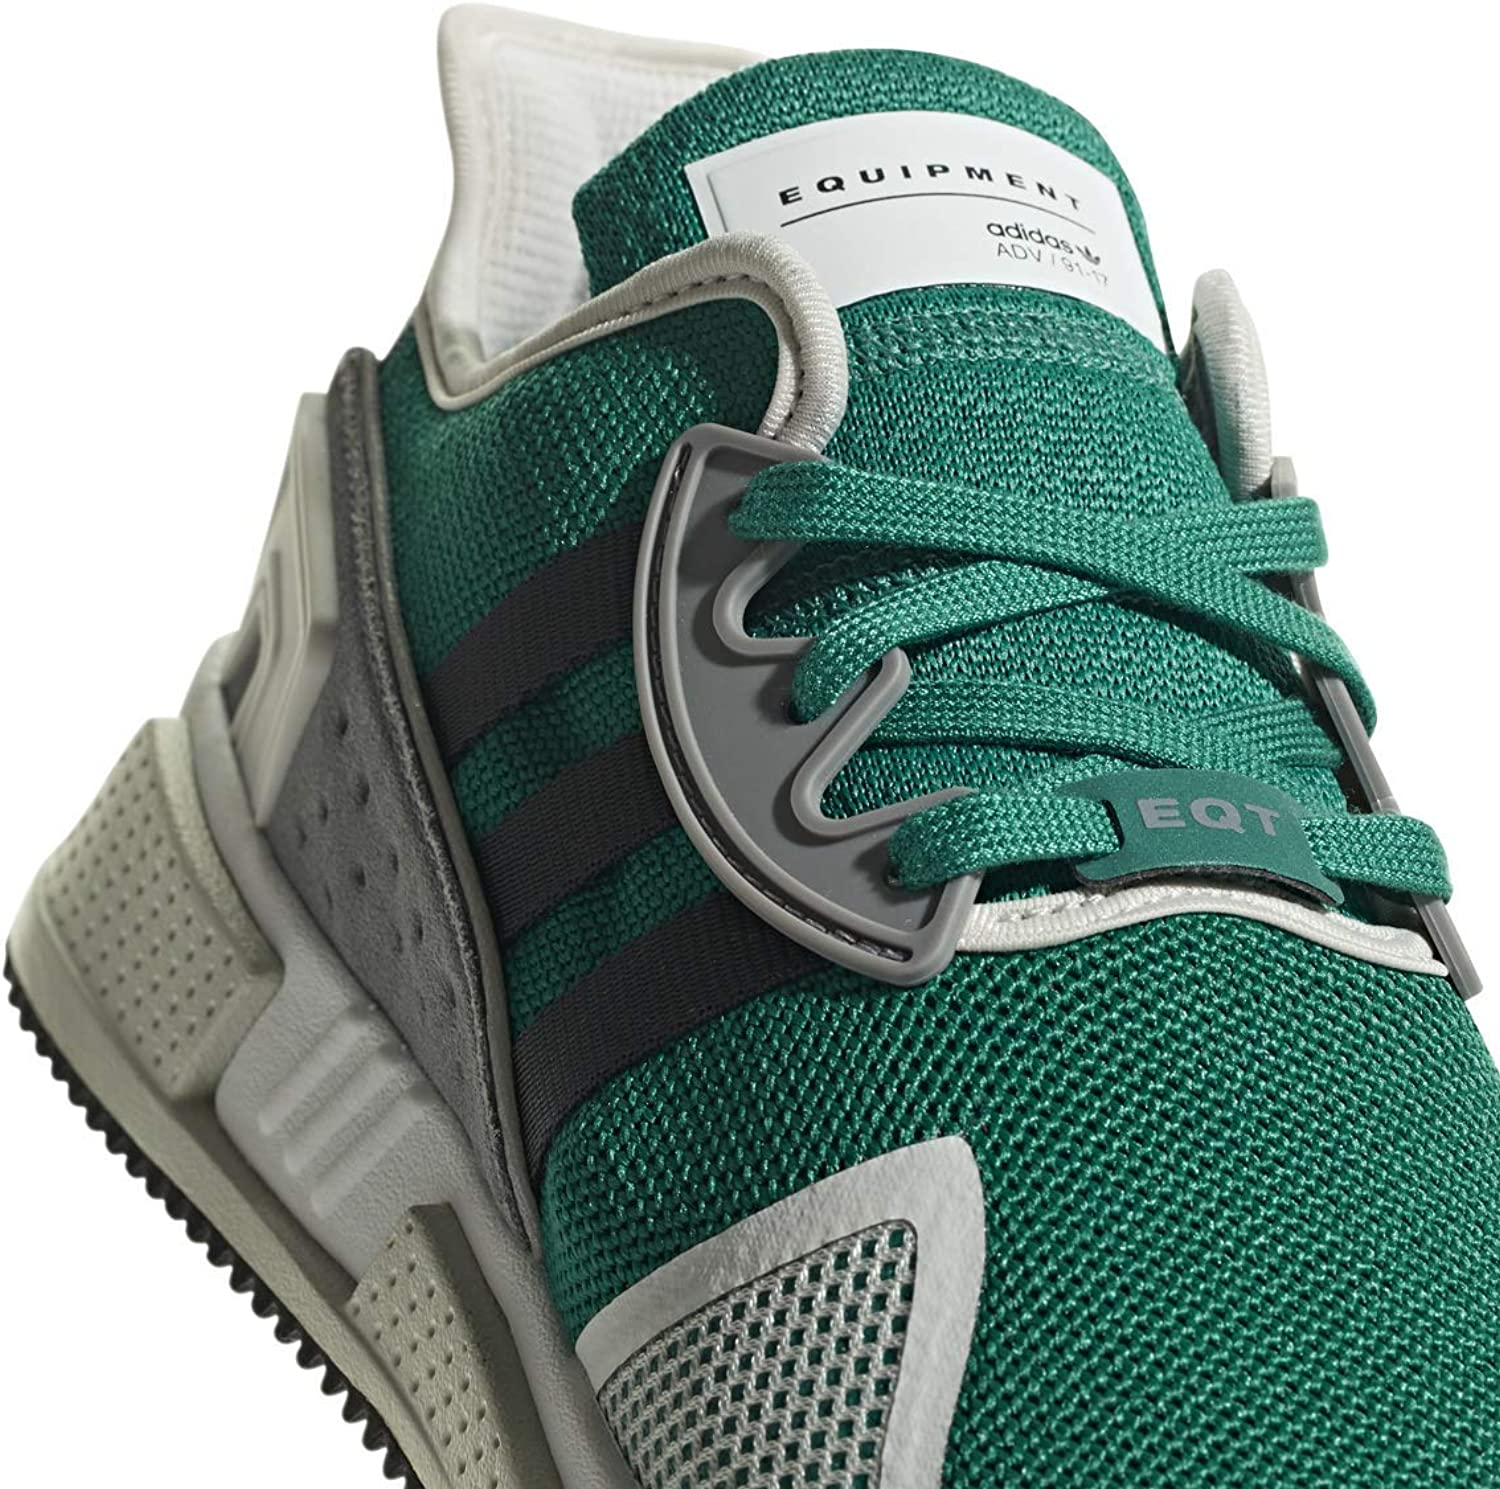 Adidas Originals Men's EQT Cushion ADV shoes (13, Green Black)